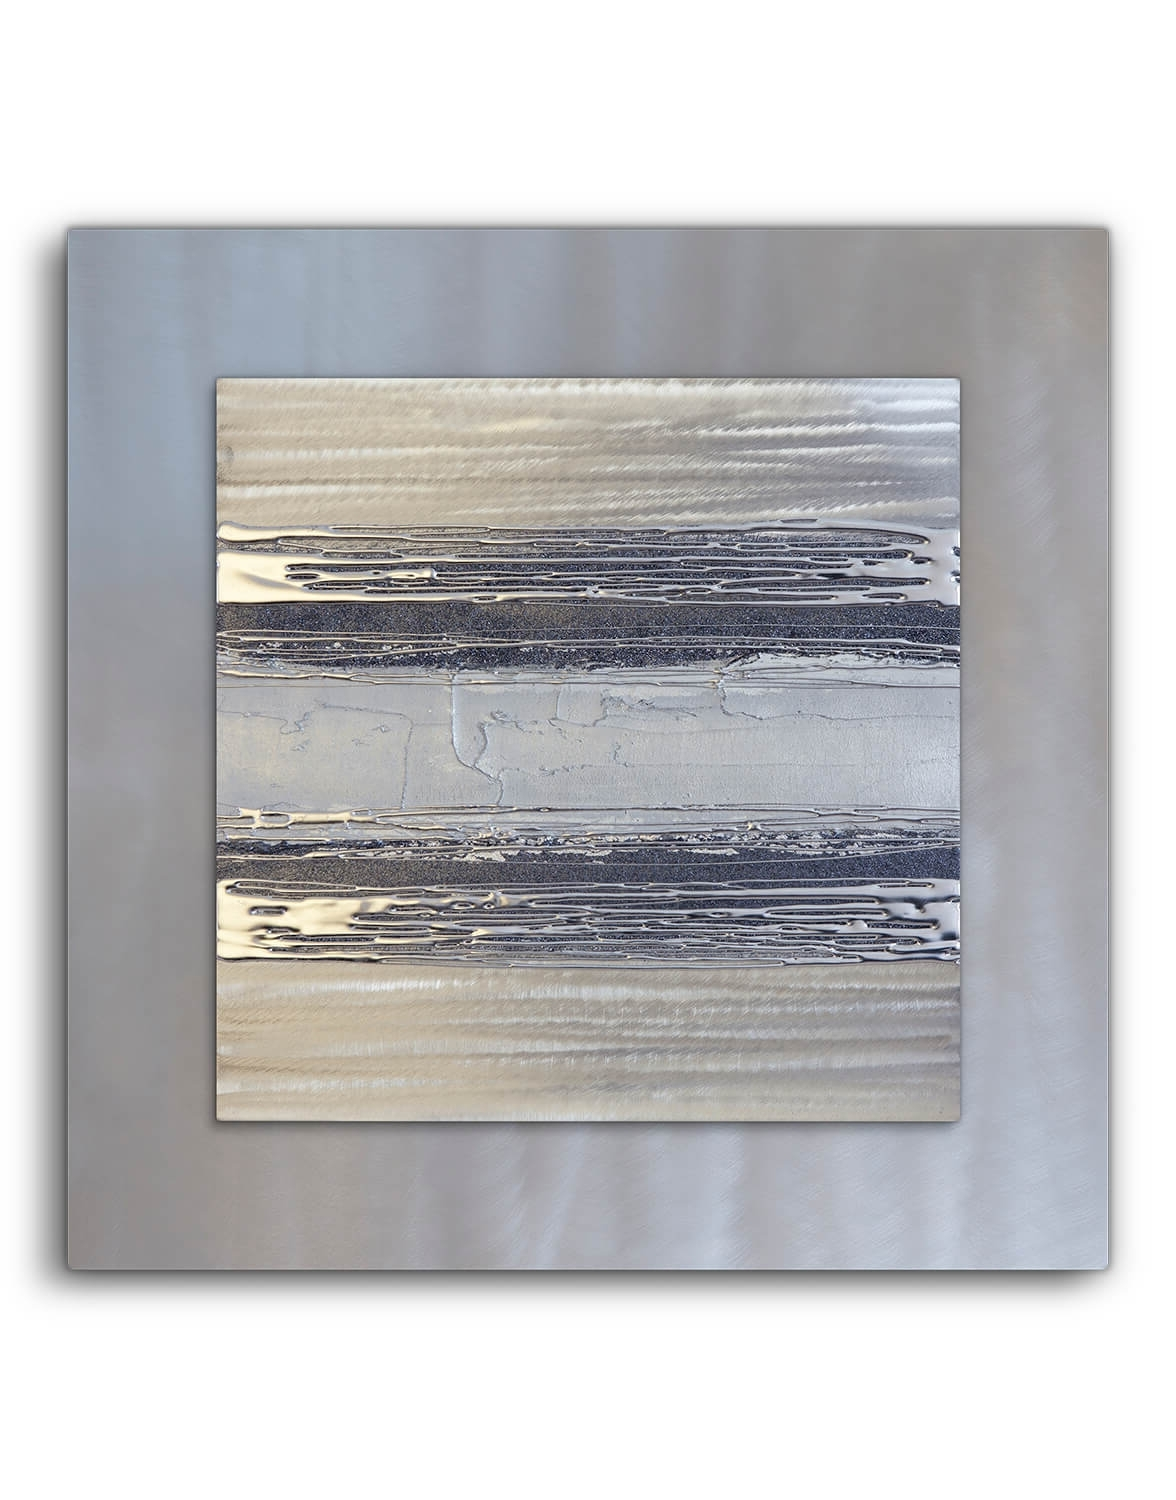 Silver Wall Art Throughout Popular Contemporary Square Silver Grey Ii – Silver Wall Art, Contemporary (View 9 of 15)